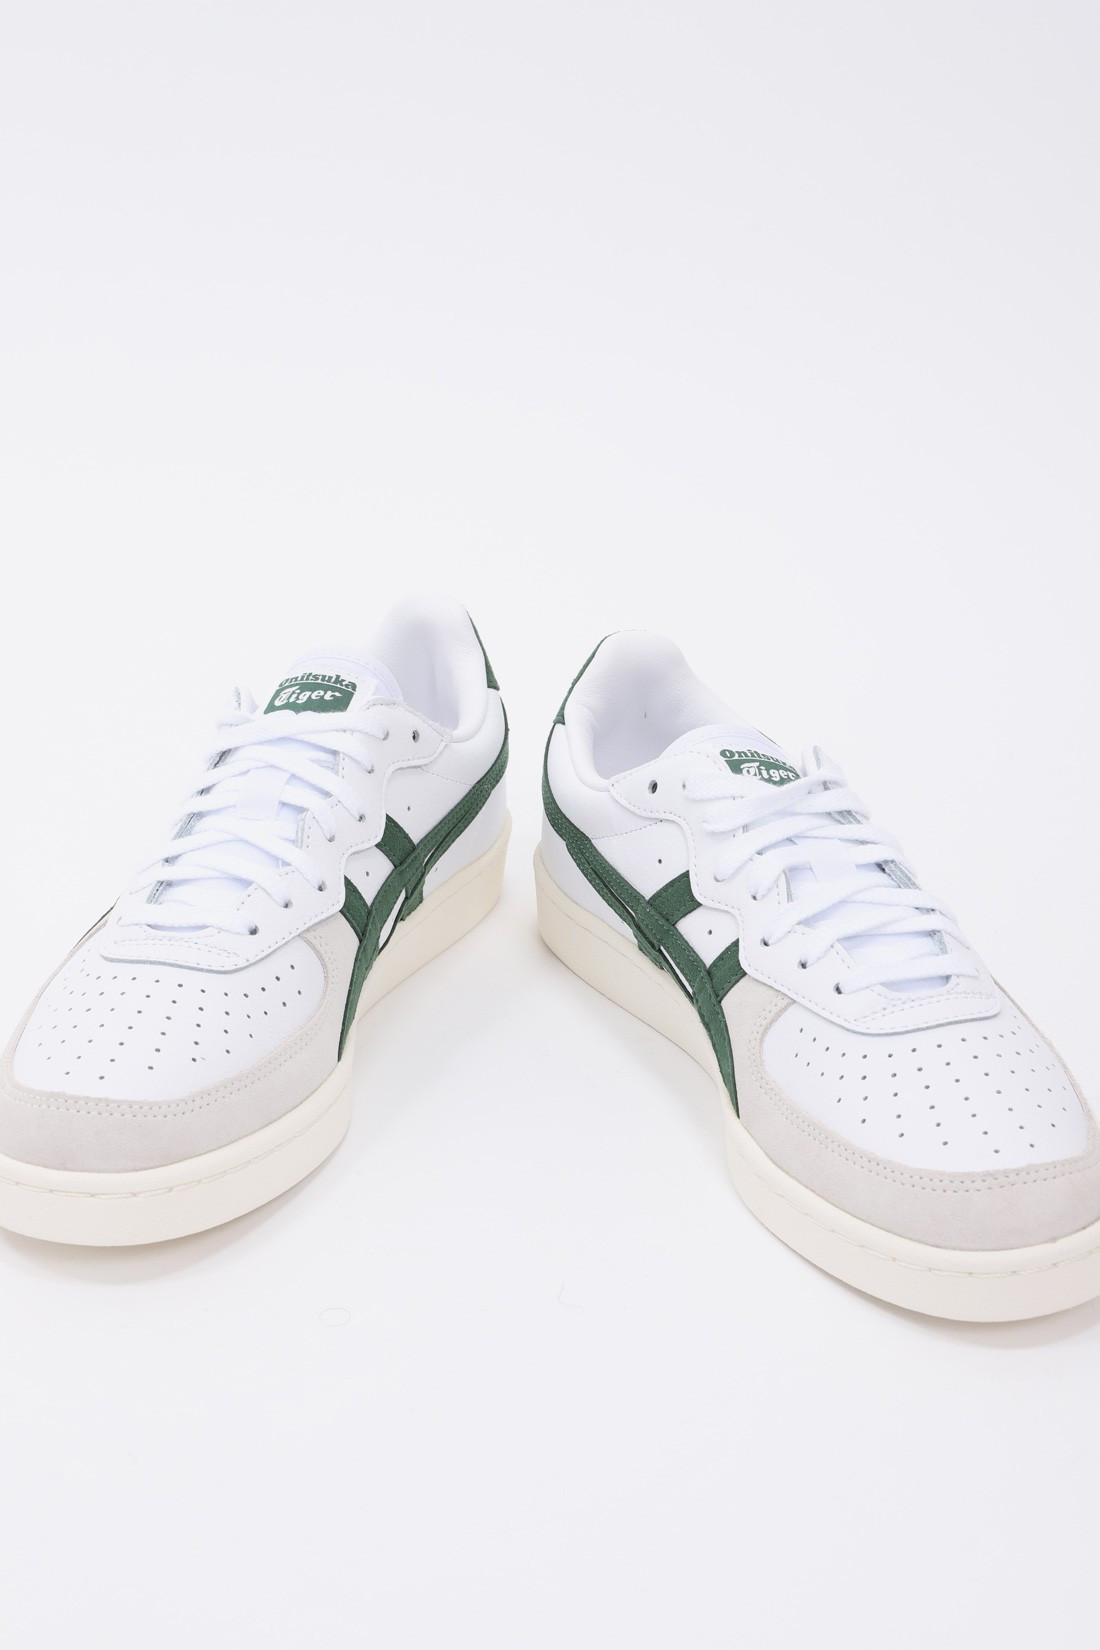 ASICS / Onitsuka tiger gsm White hunter green